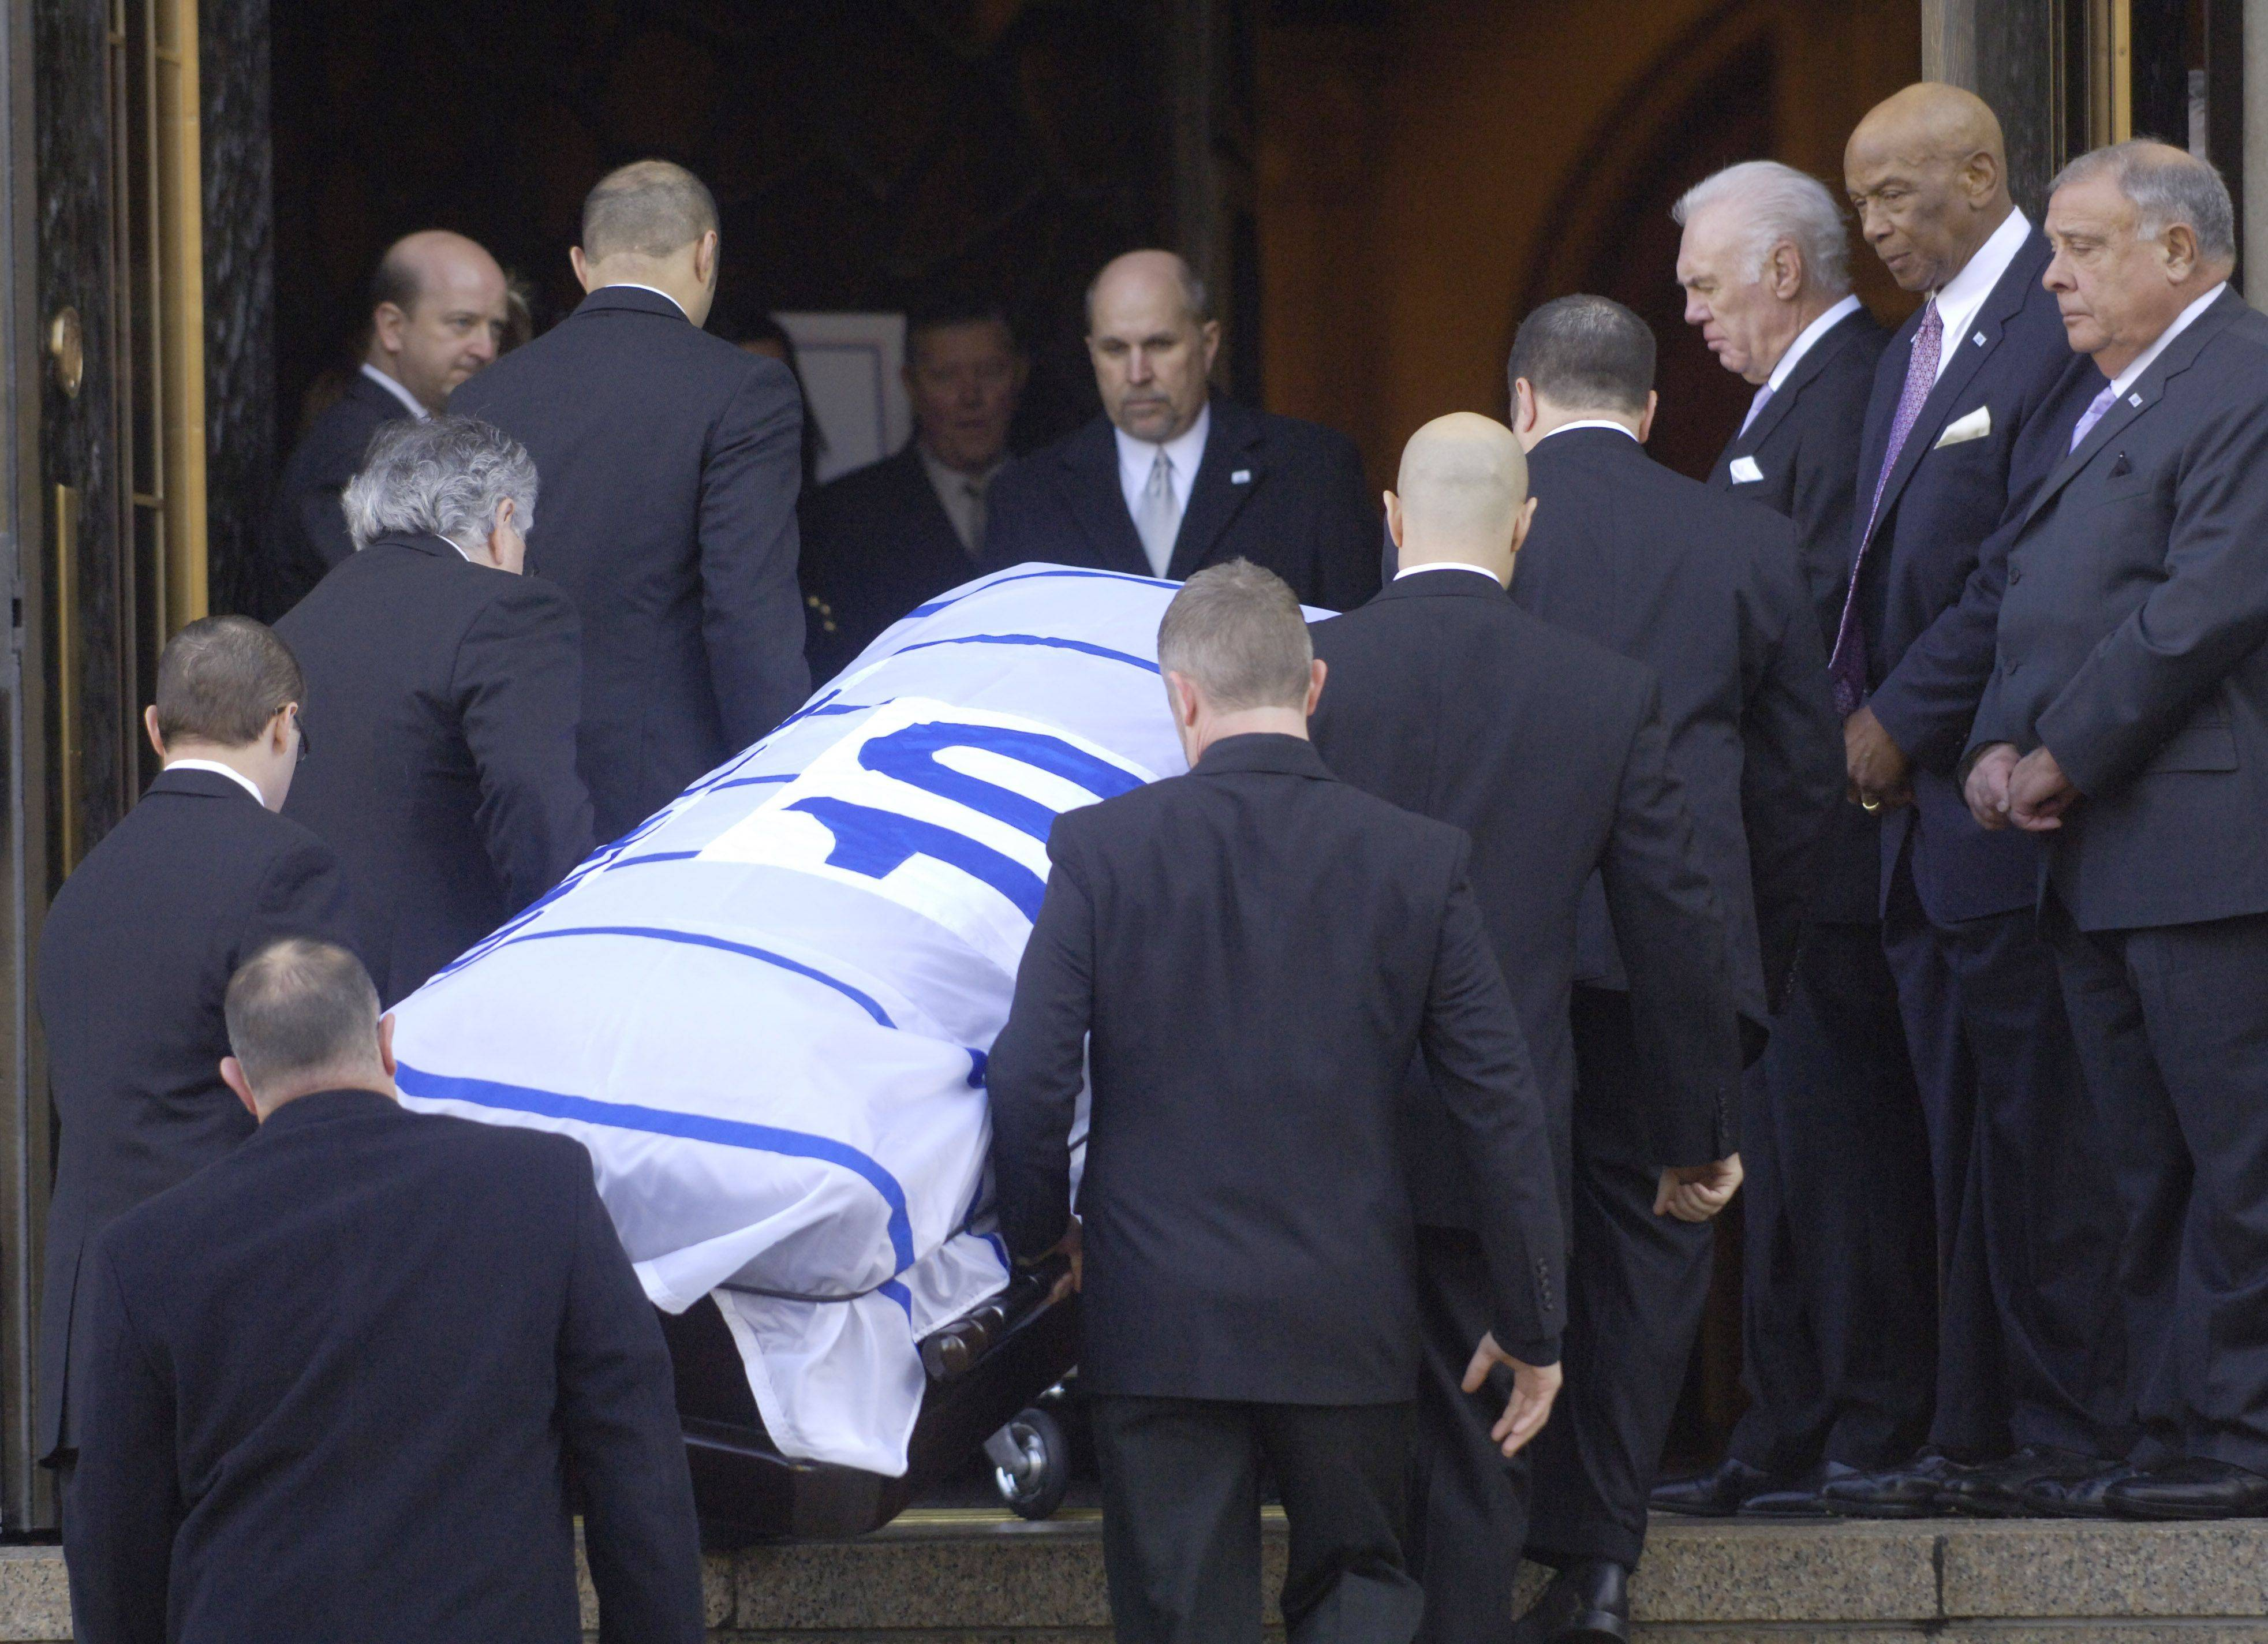 Pallbearers carry Ron Santo's casket into Holy Name Cathedral on Friday before his funeral. The funeral procession followed a path down Michigan Avenue and around Wrigley Field, where mourners gathered and left memorials to say goodbye to No. 10.